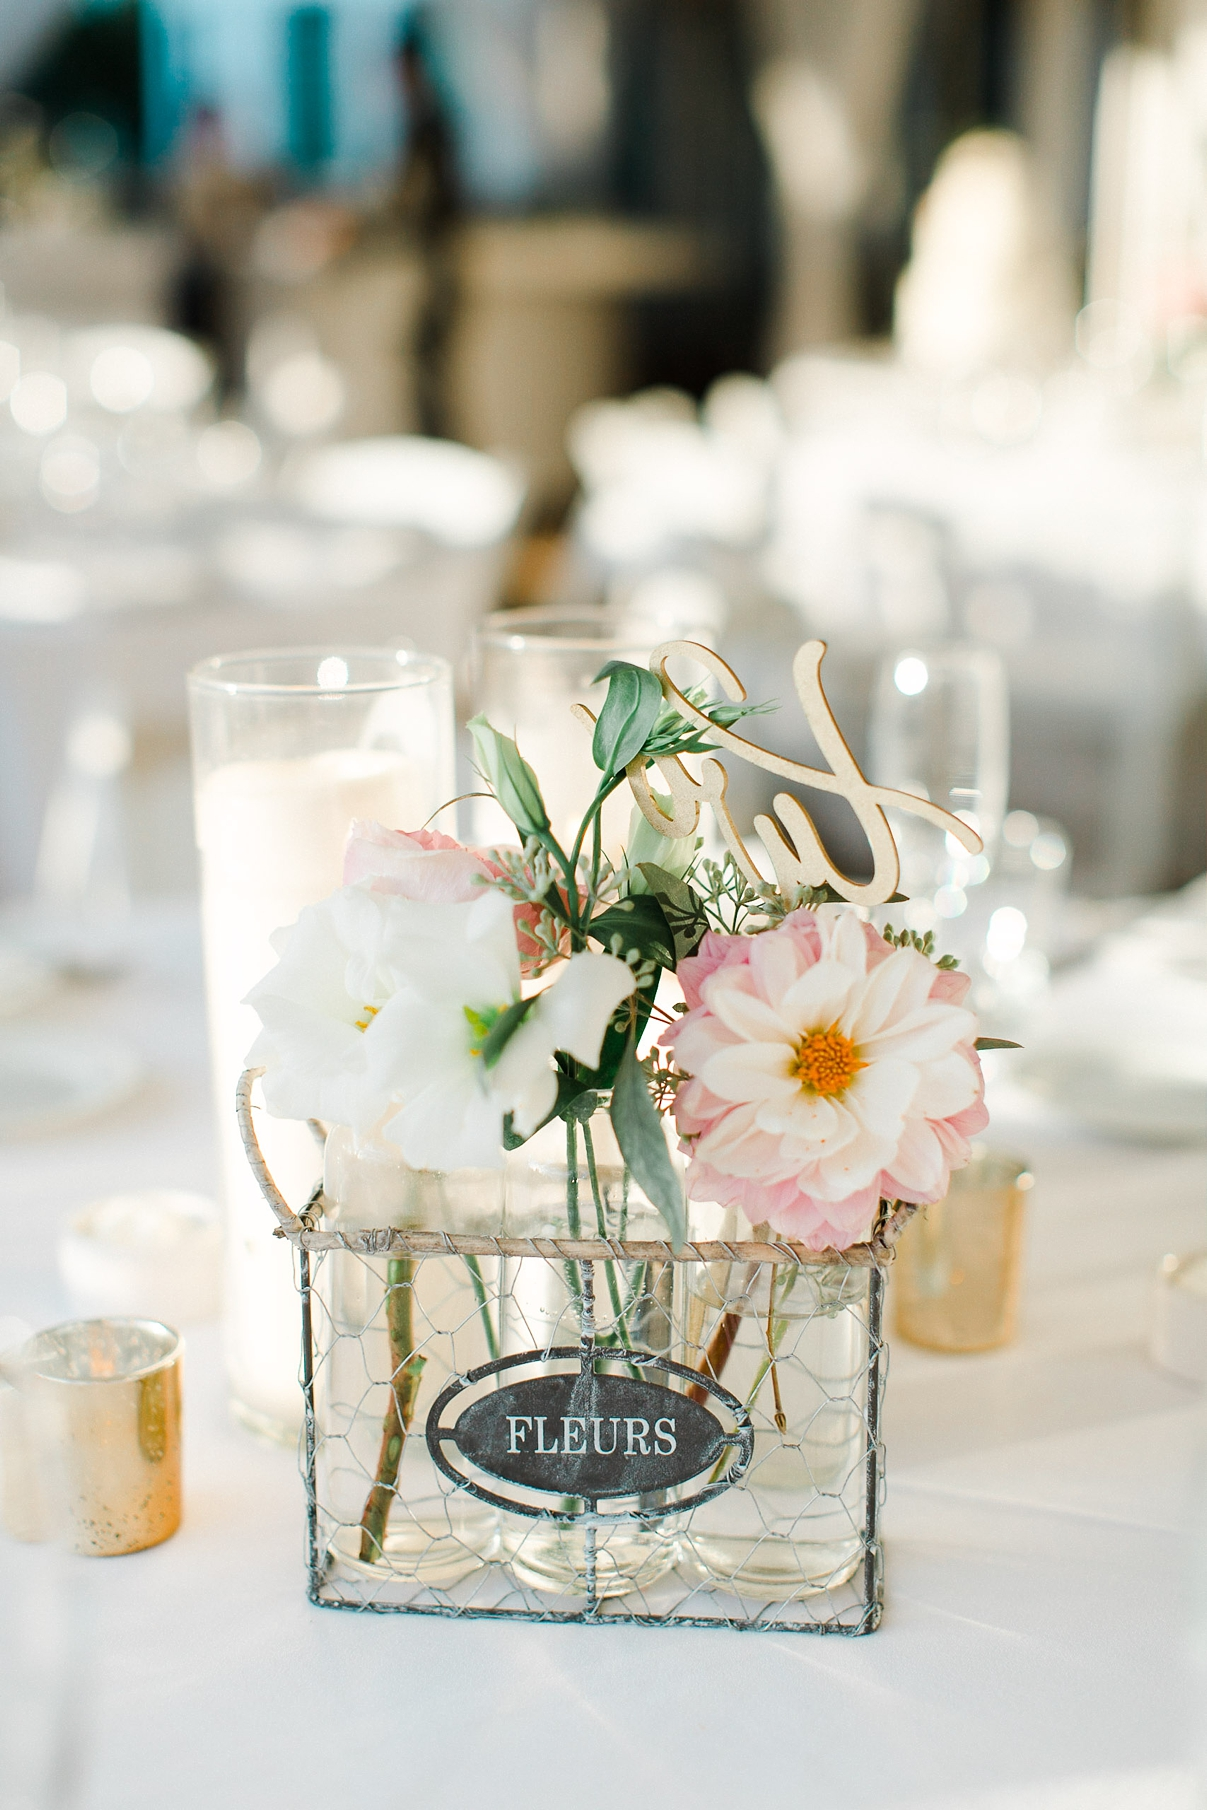 charlottesville_clifton_inn_wedding-127.jpg